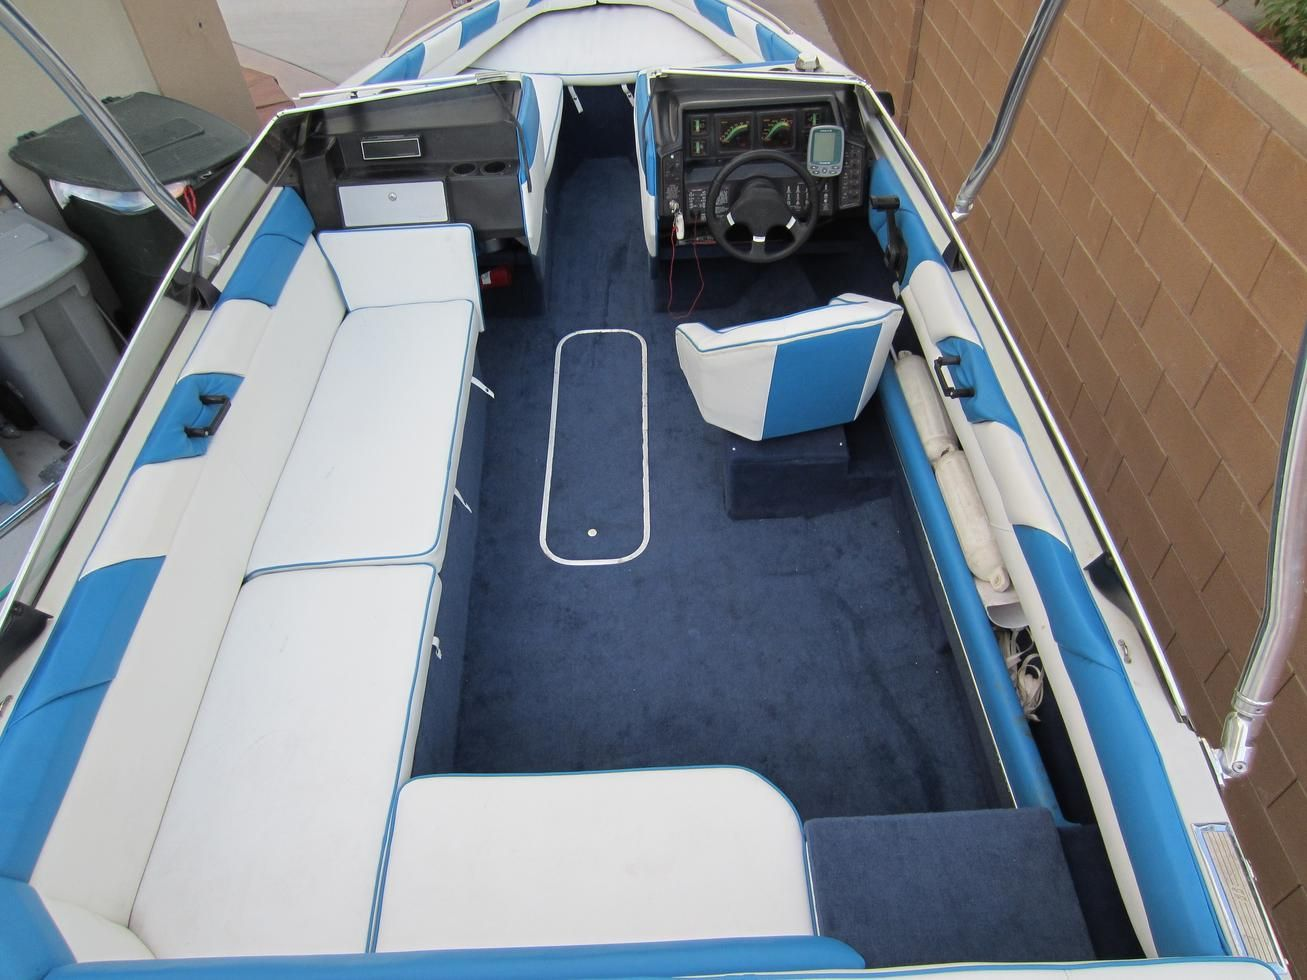 hight resolution of 1989 bayliner capri with live well pics google search